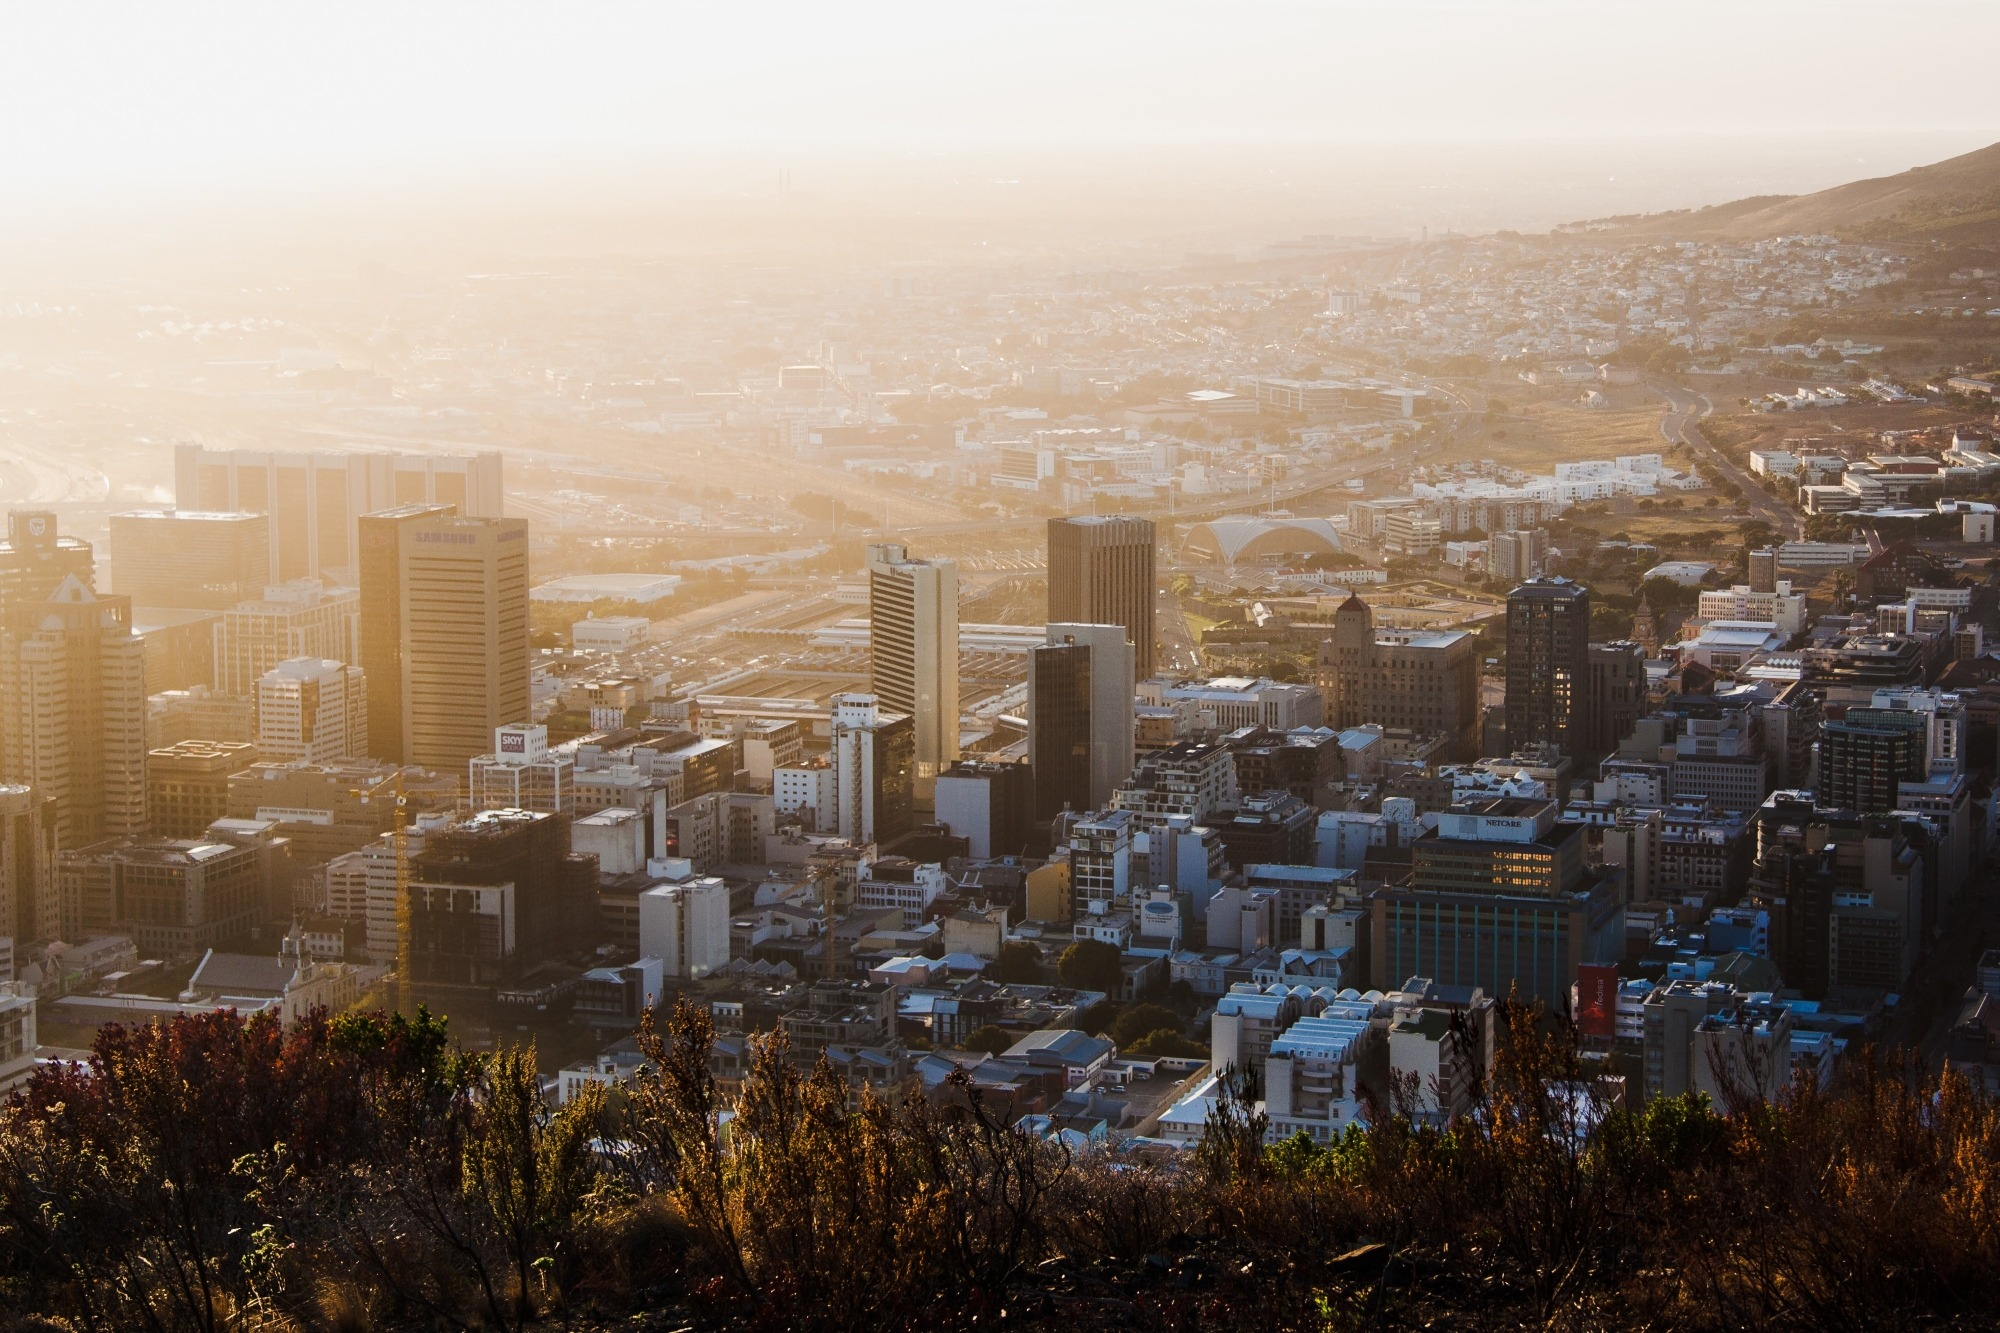 Amdec set to build R14bn multi-tower development in Cape Town (1)